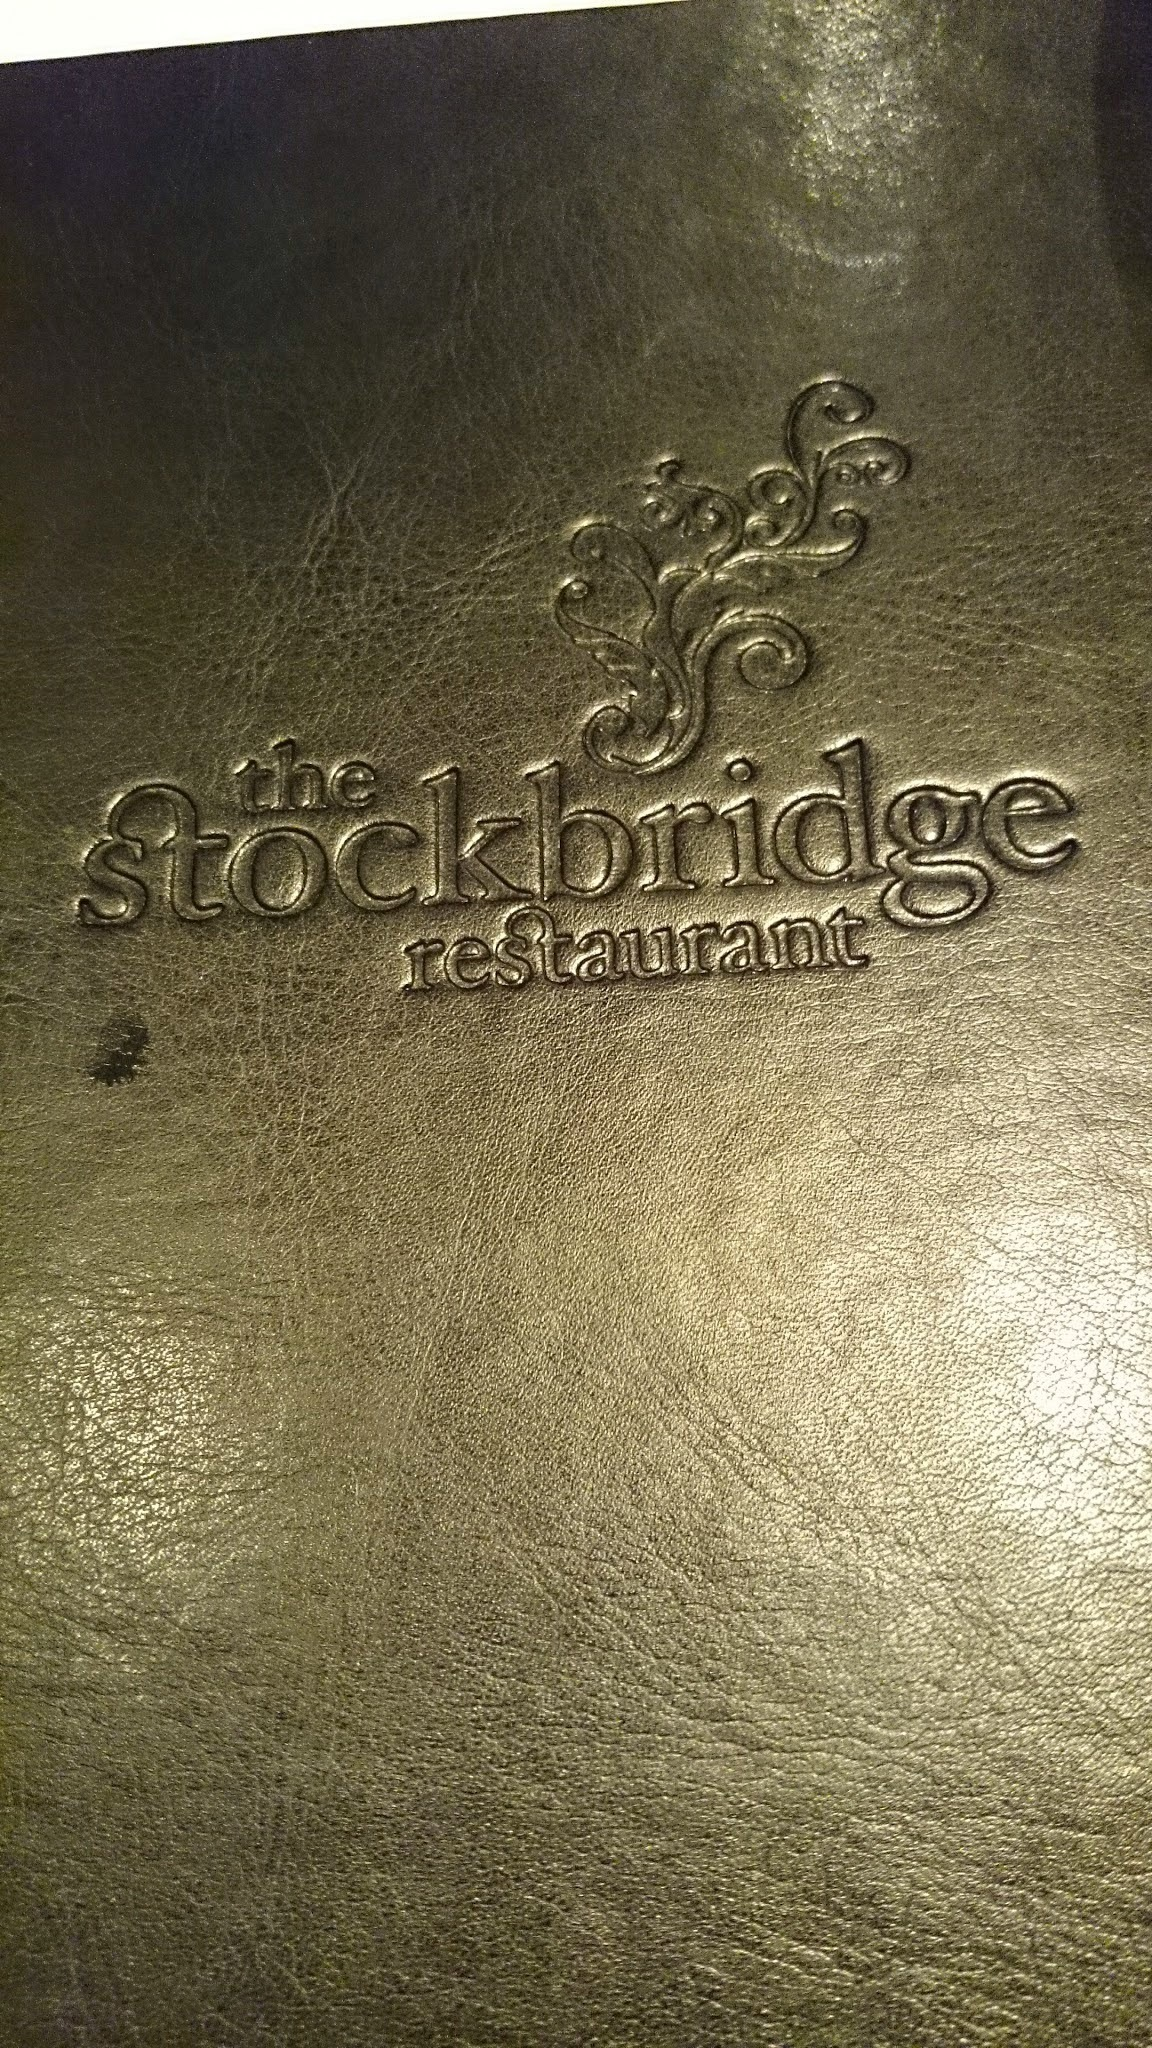 Review: The Stockbridge Restaurant, Edinburgh